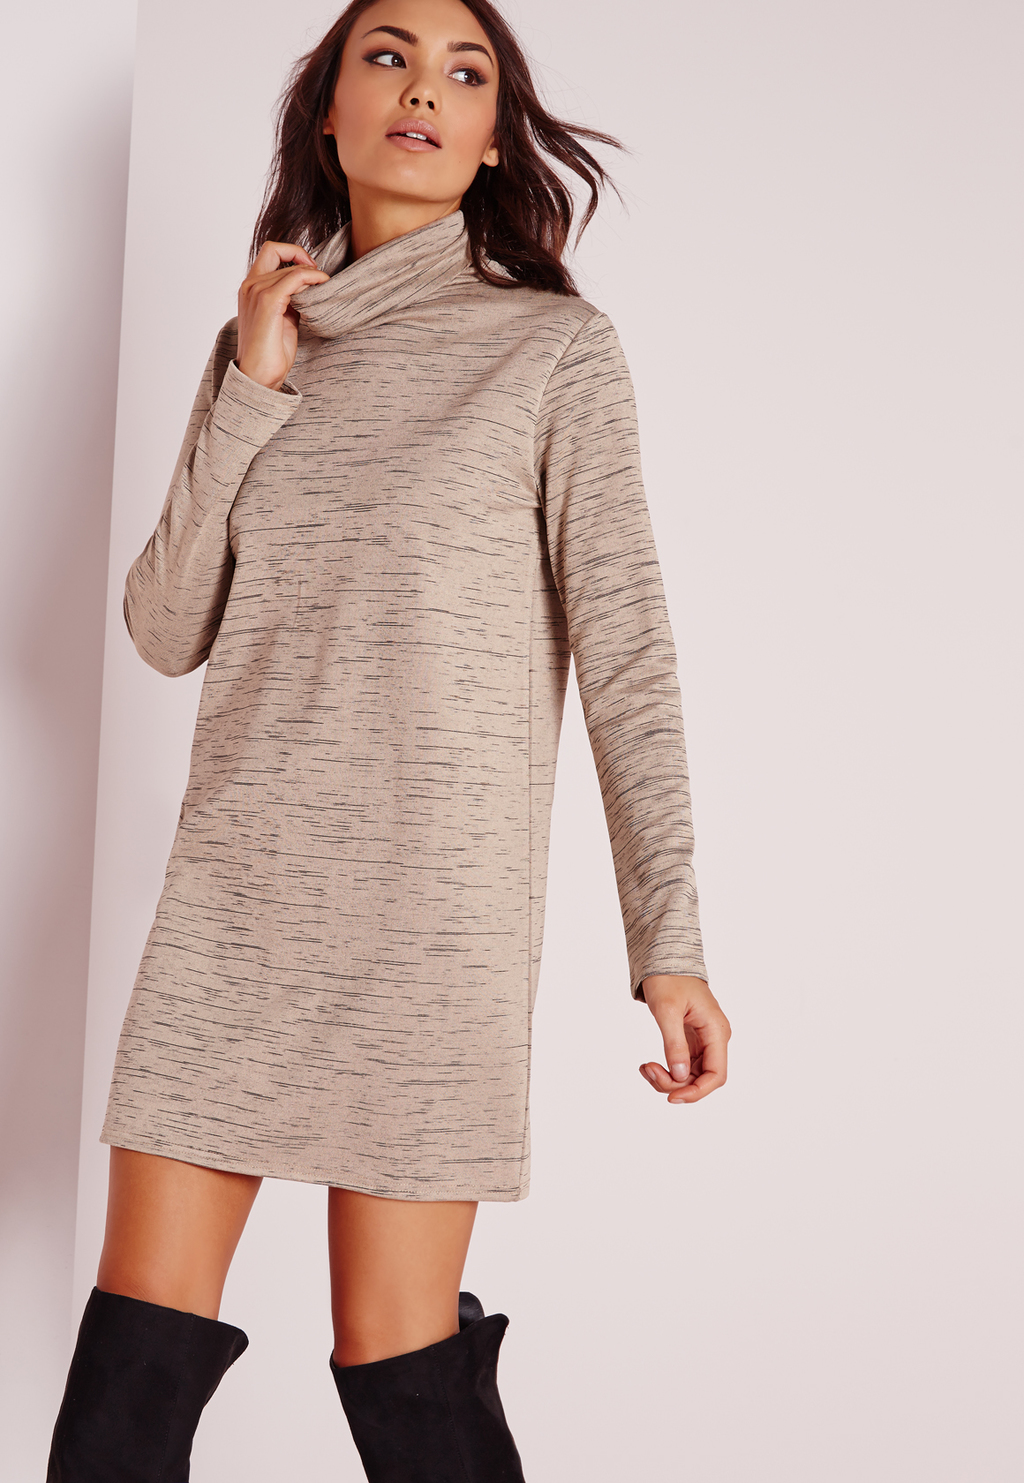 Long Sleeve Roll Neck Oversized Dress Nude, Grey - style: tunic; length: mid thigh; pattern: plain; neckline: roll neck; predominant colour: stone; occasions: casual; fit: body skimming; fibres: polyester/polyamide - stretch; sleeve length: long sleeve; sleeve style: standard; texture group: knits/crochet; pattern type: fabric; season: s/s 2016; wardrobe: basic